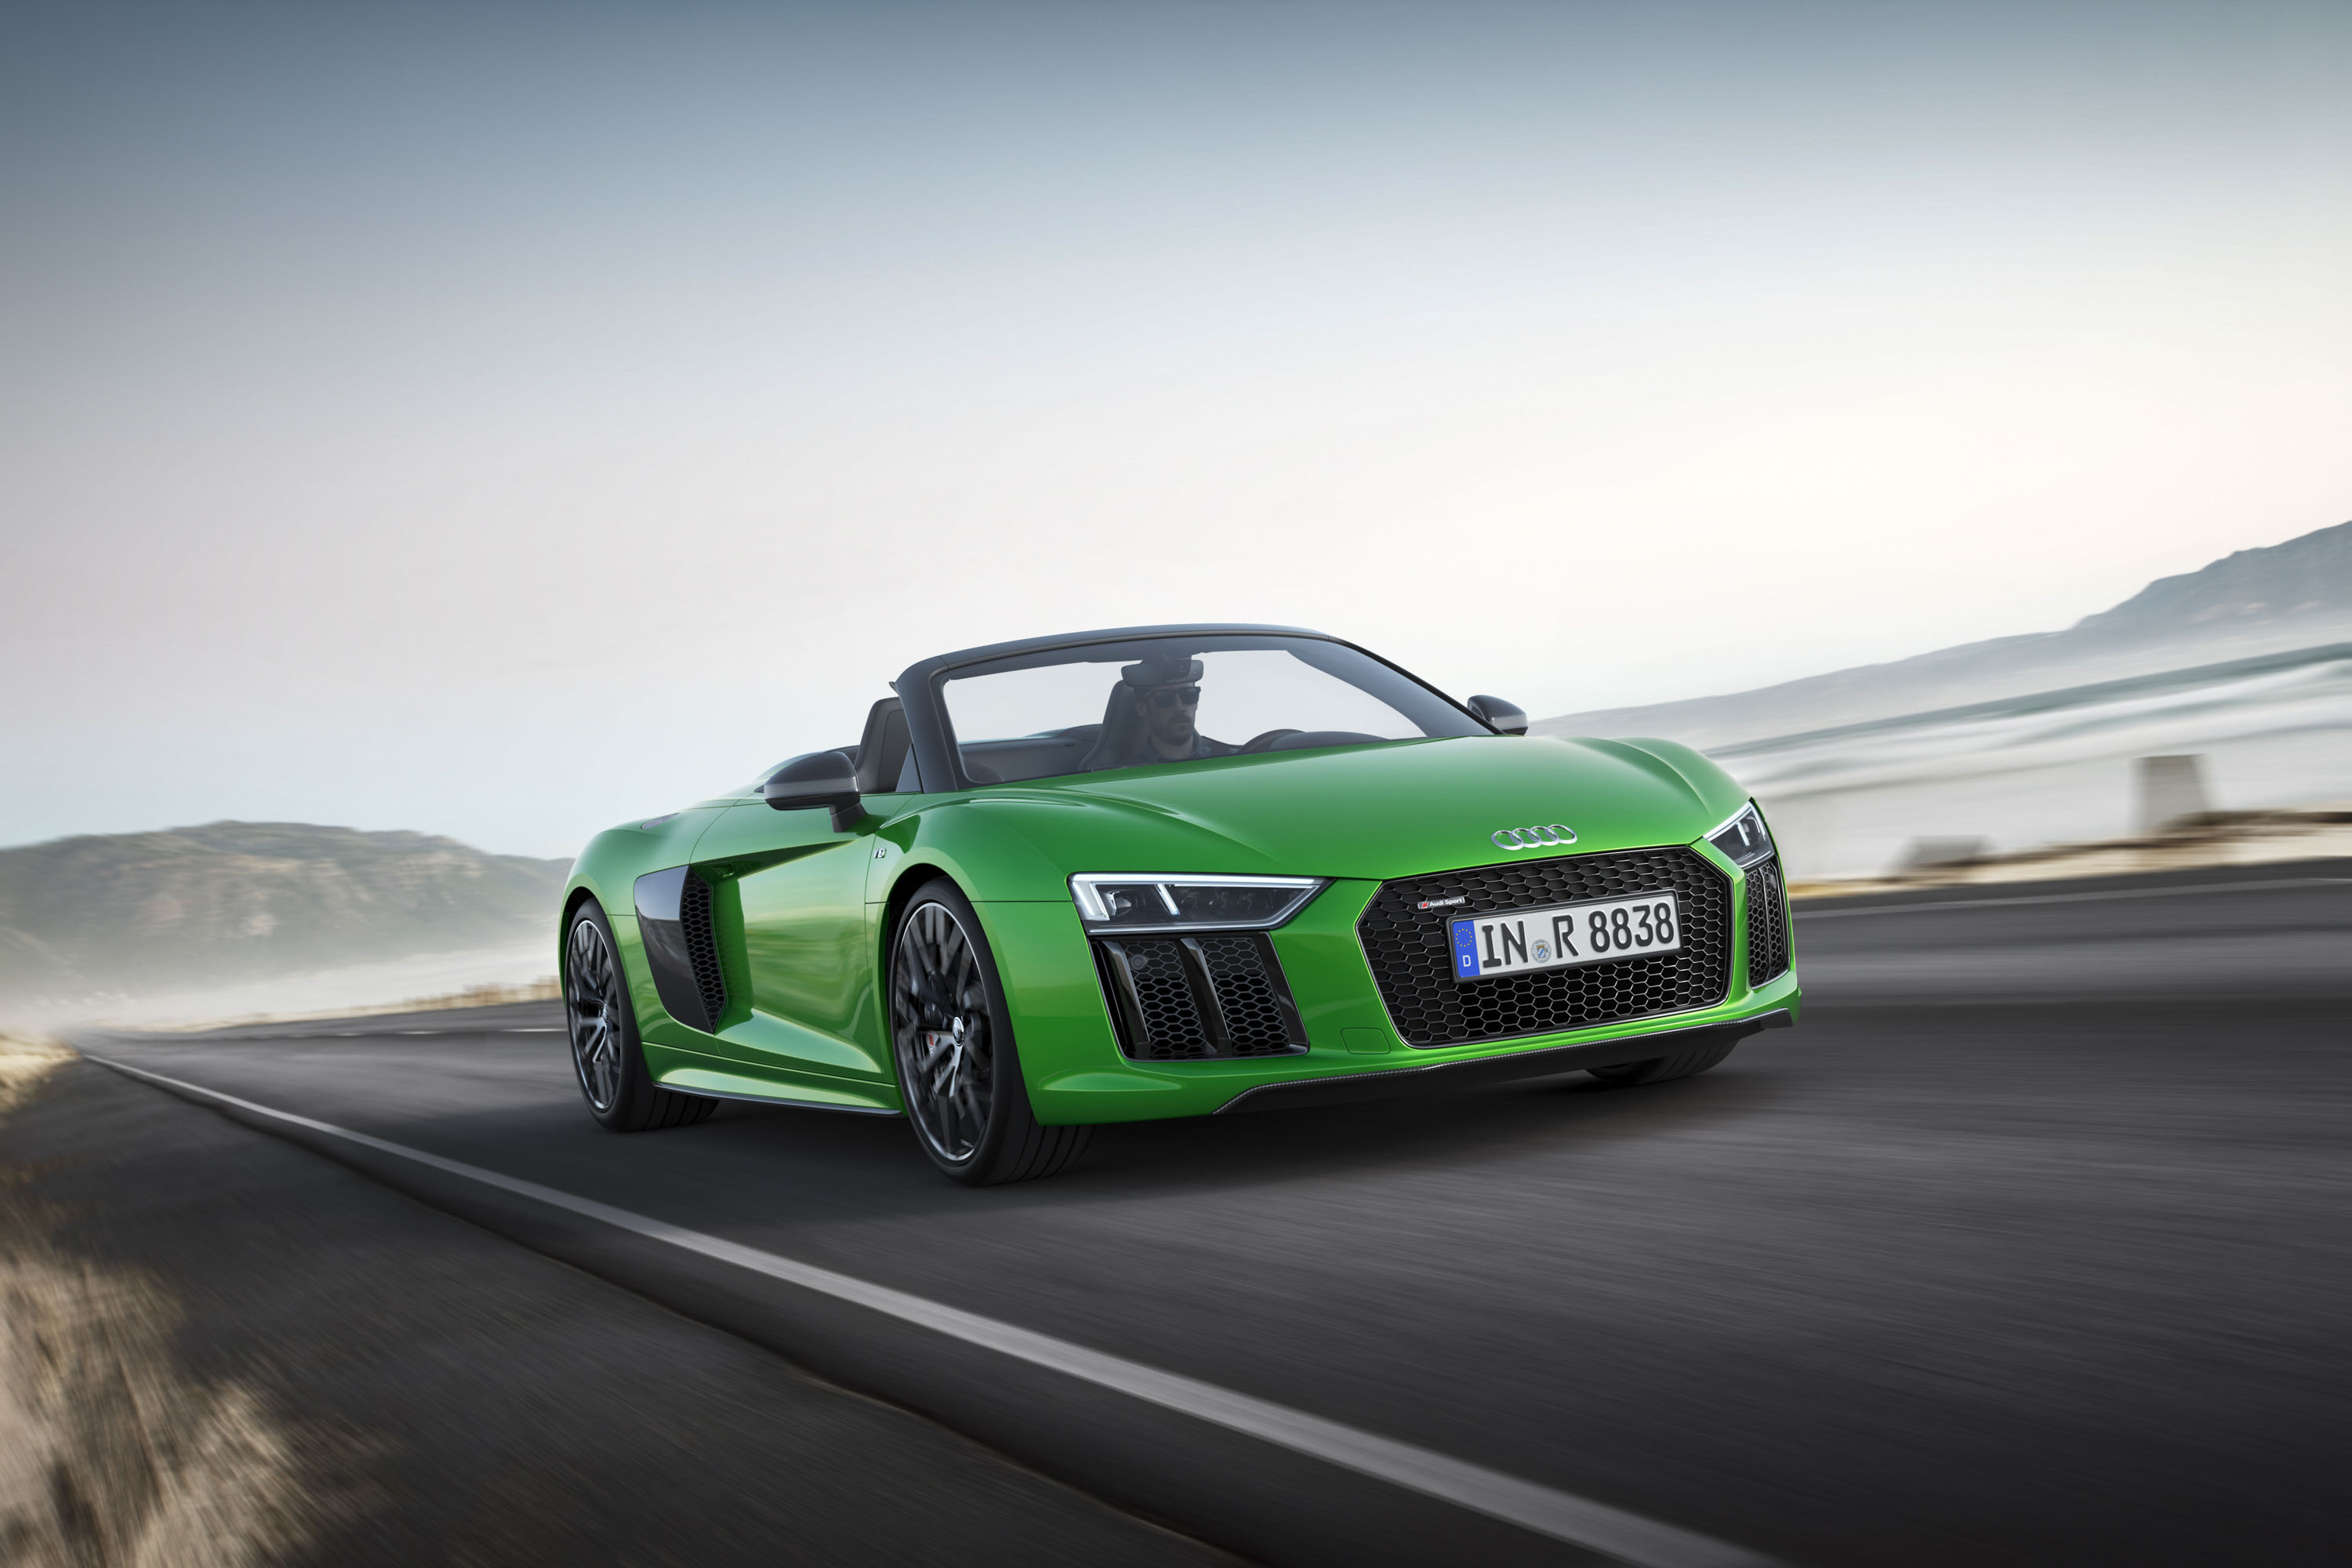 2018 Audi R8 Spyder V10 Plus Wallpapers 11 Hd Images Newcarcars